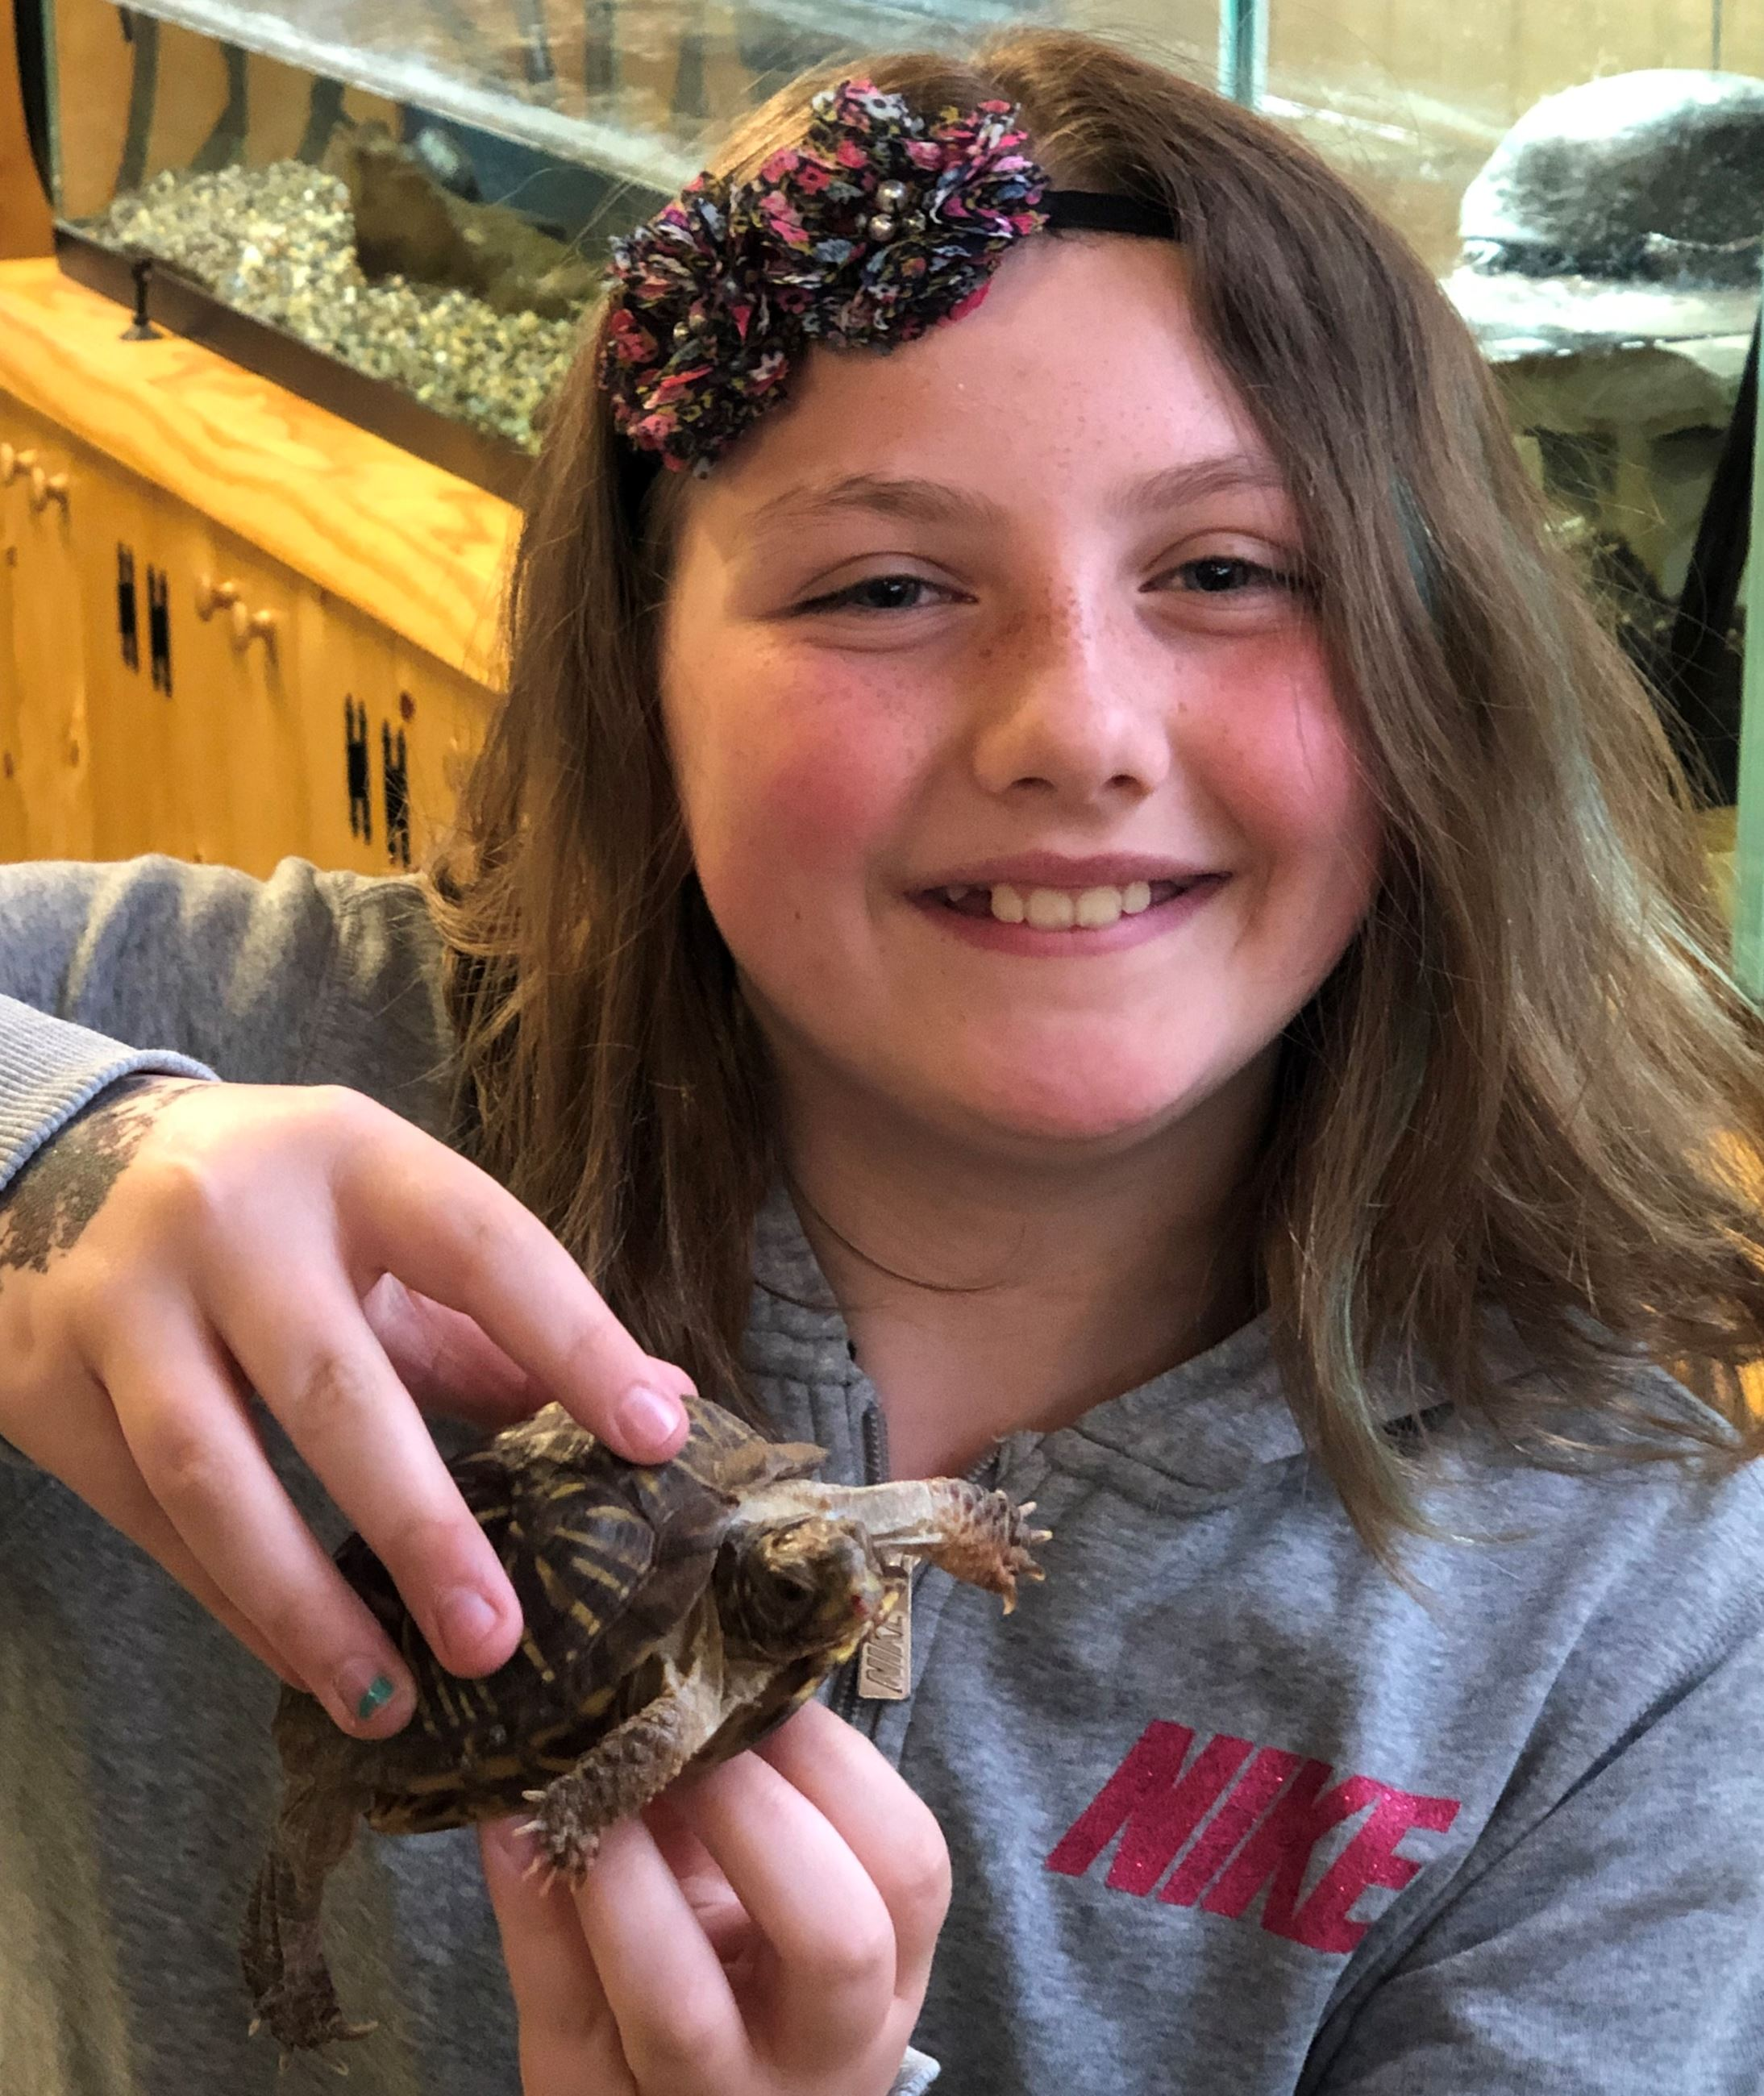 A girl holding a box turtle. She is smiling.